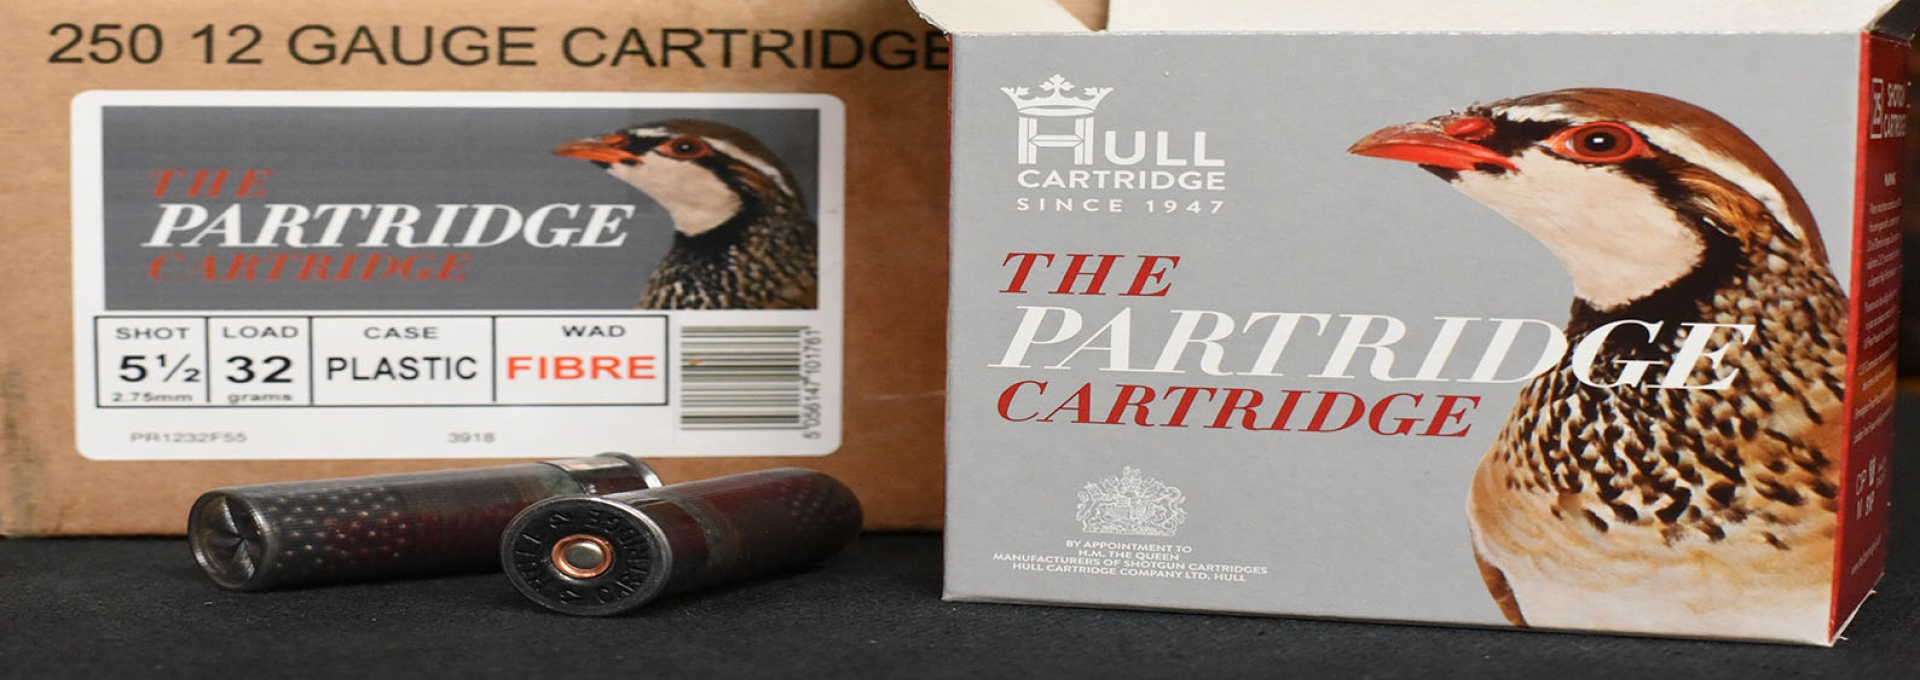 The Partridge Cartridge